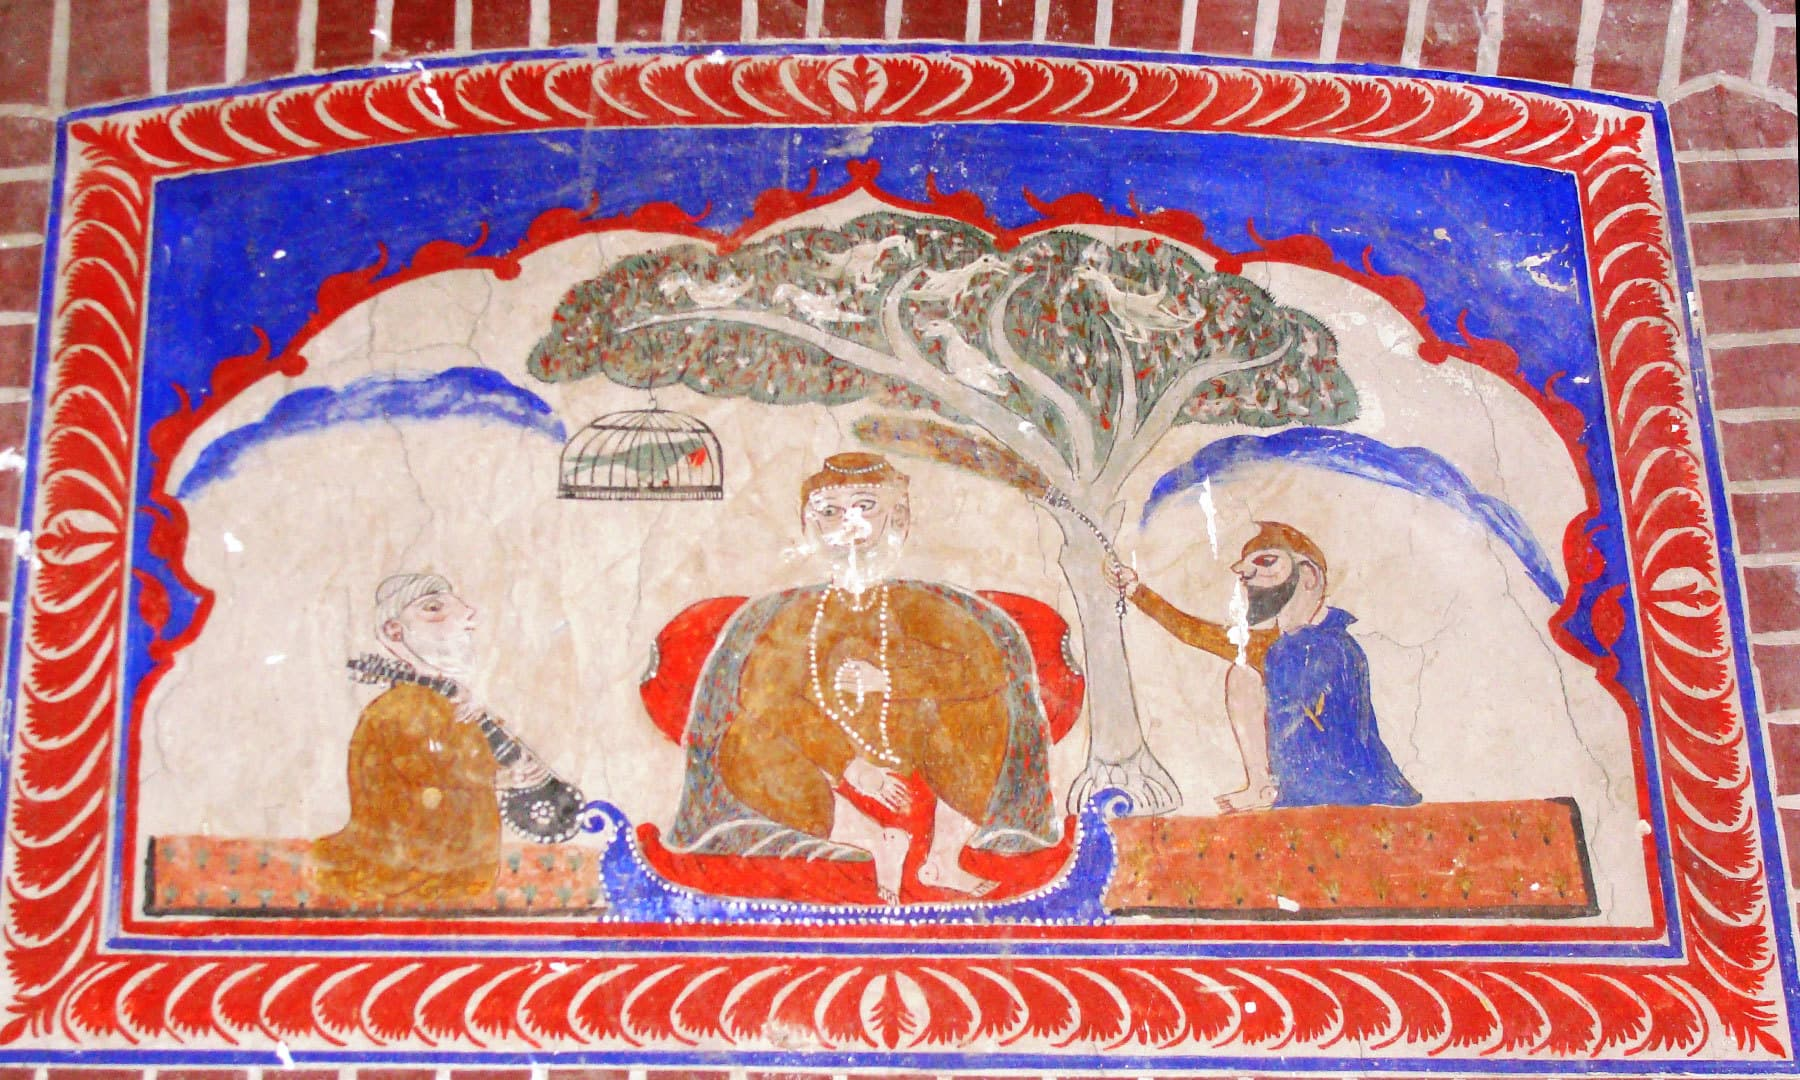 Depiction of Baba Guru Nanak with Bhai Bala and Mardana.